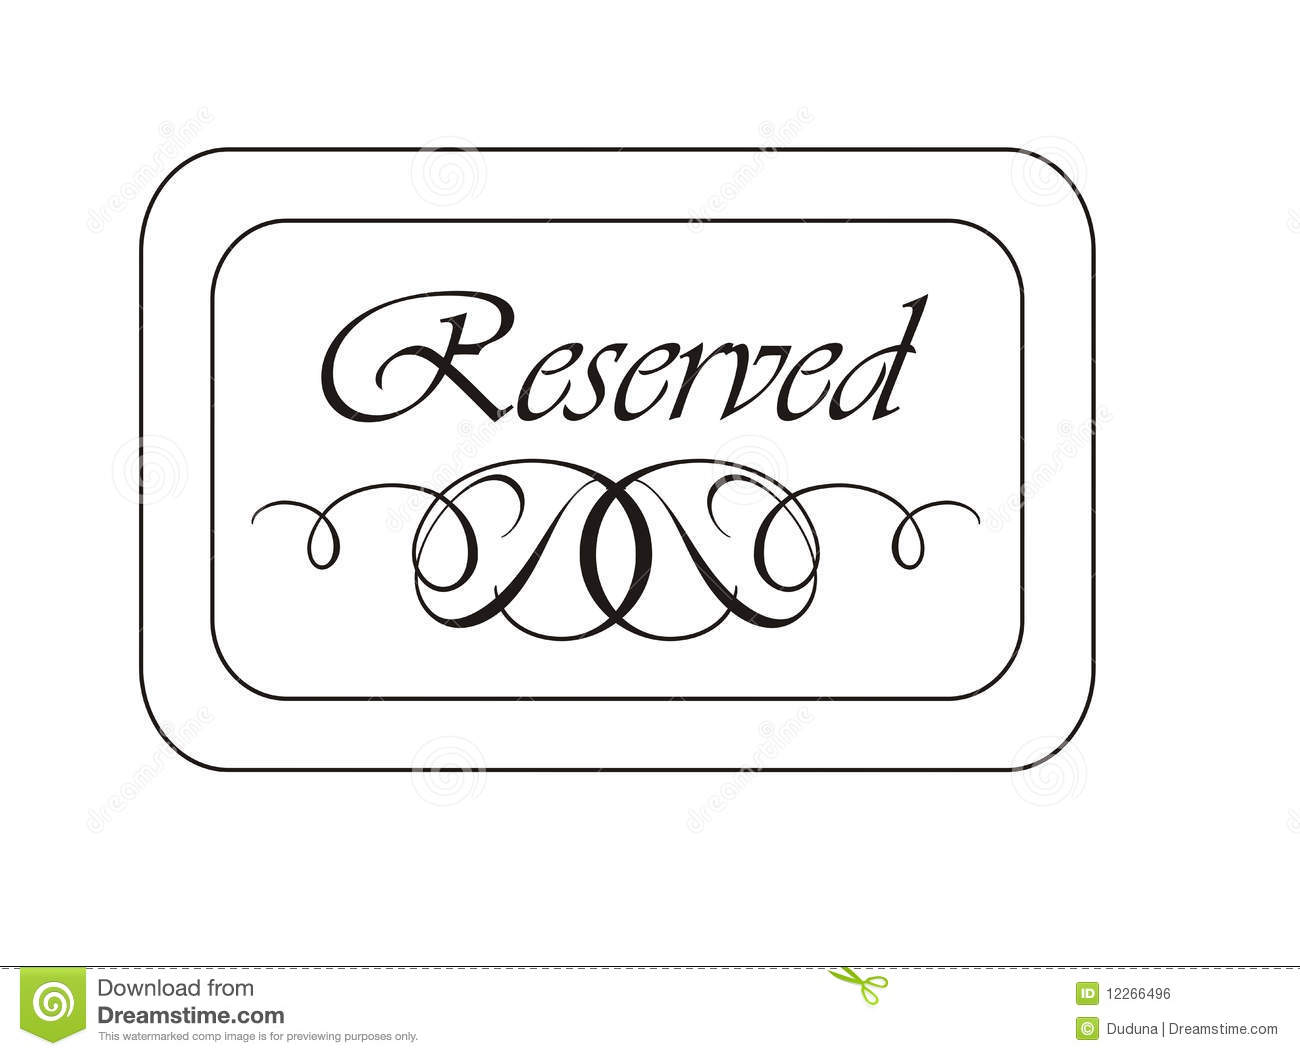 Royalty Free Stock Image Reserved Sign Image12266496 on banquet chairs for less